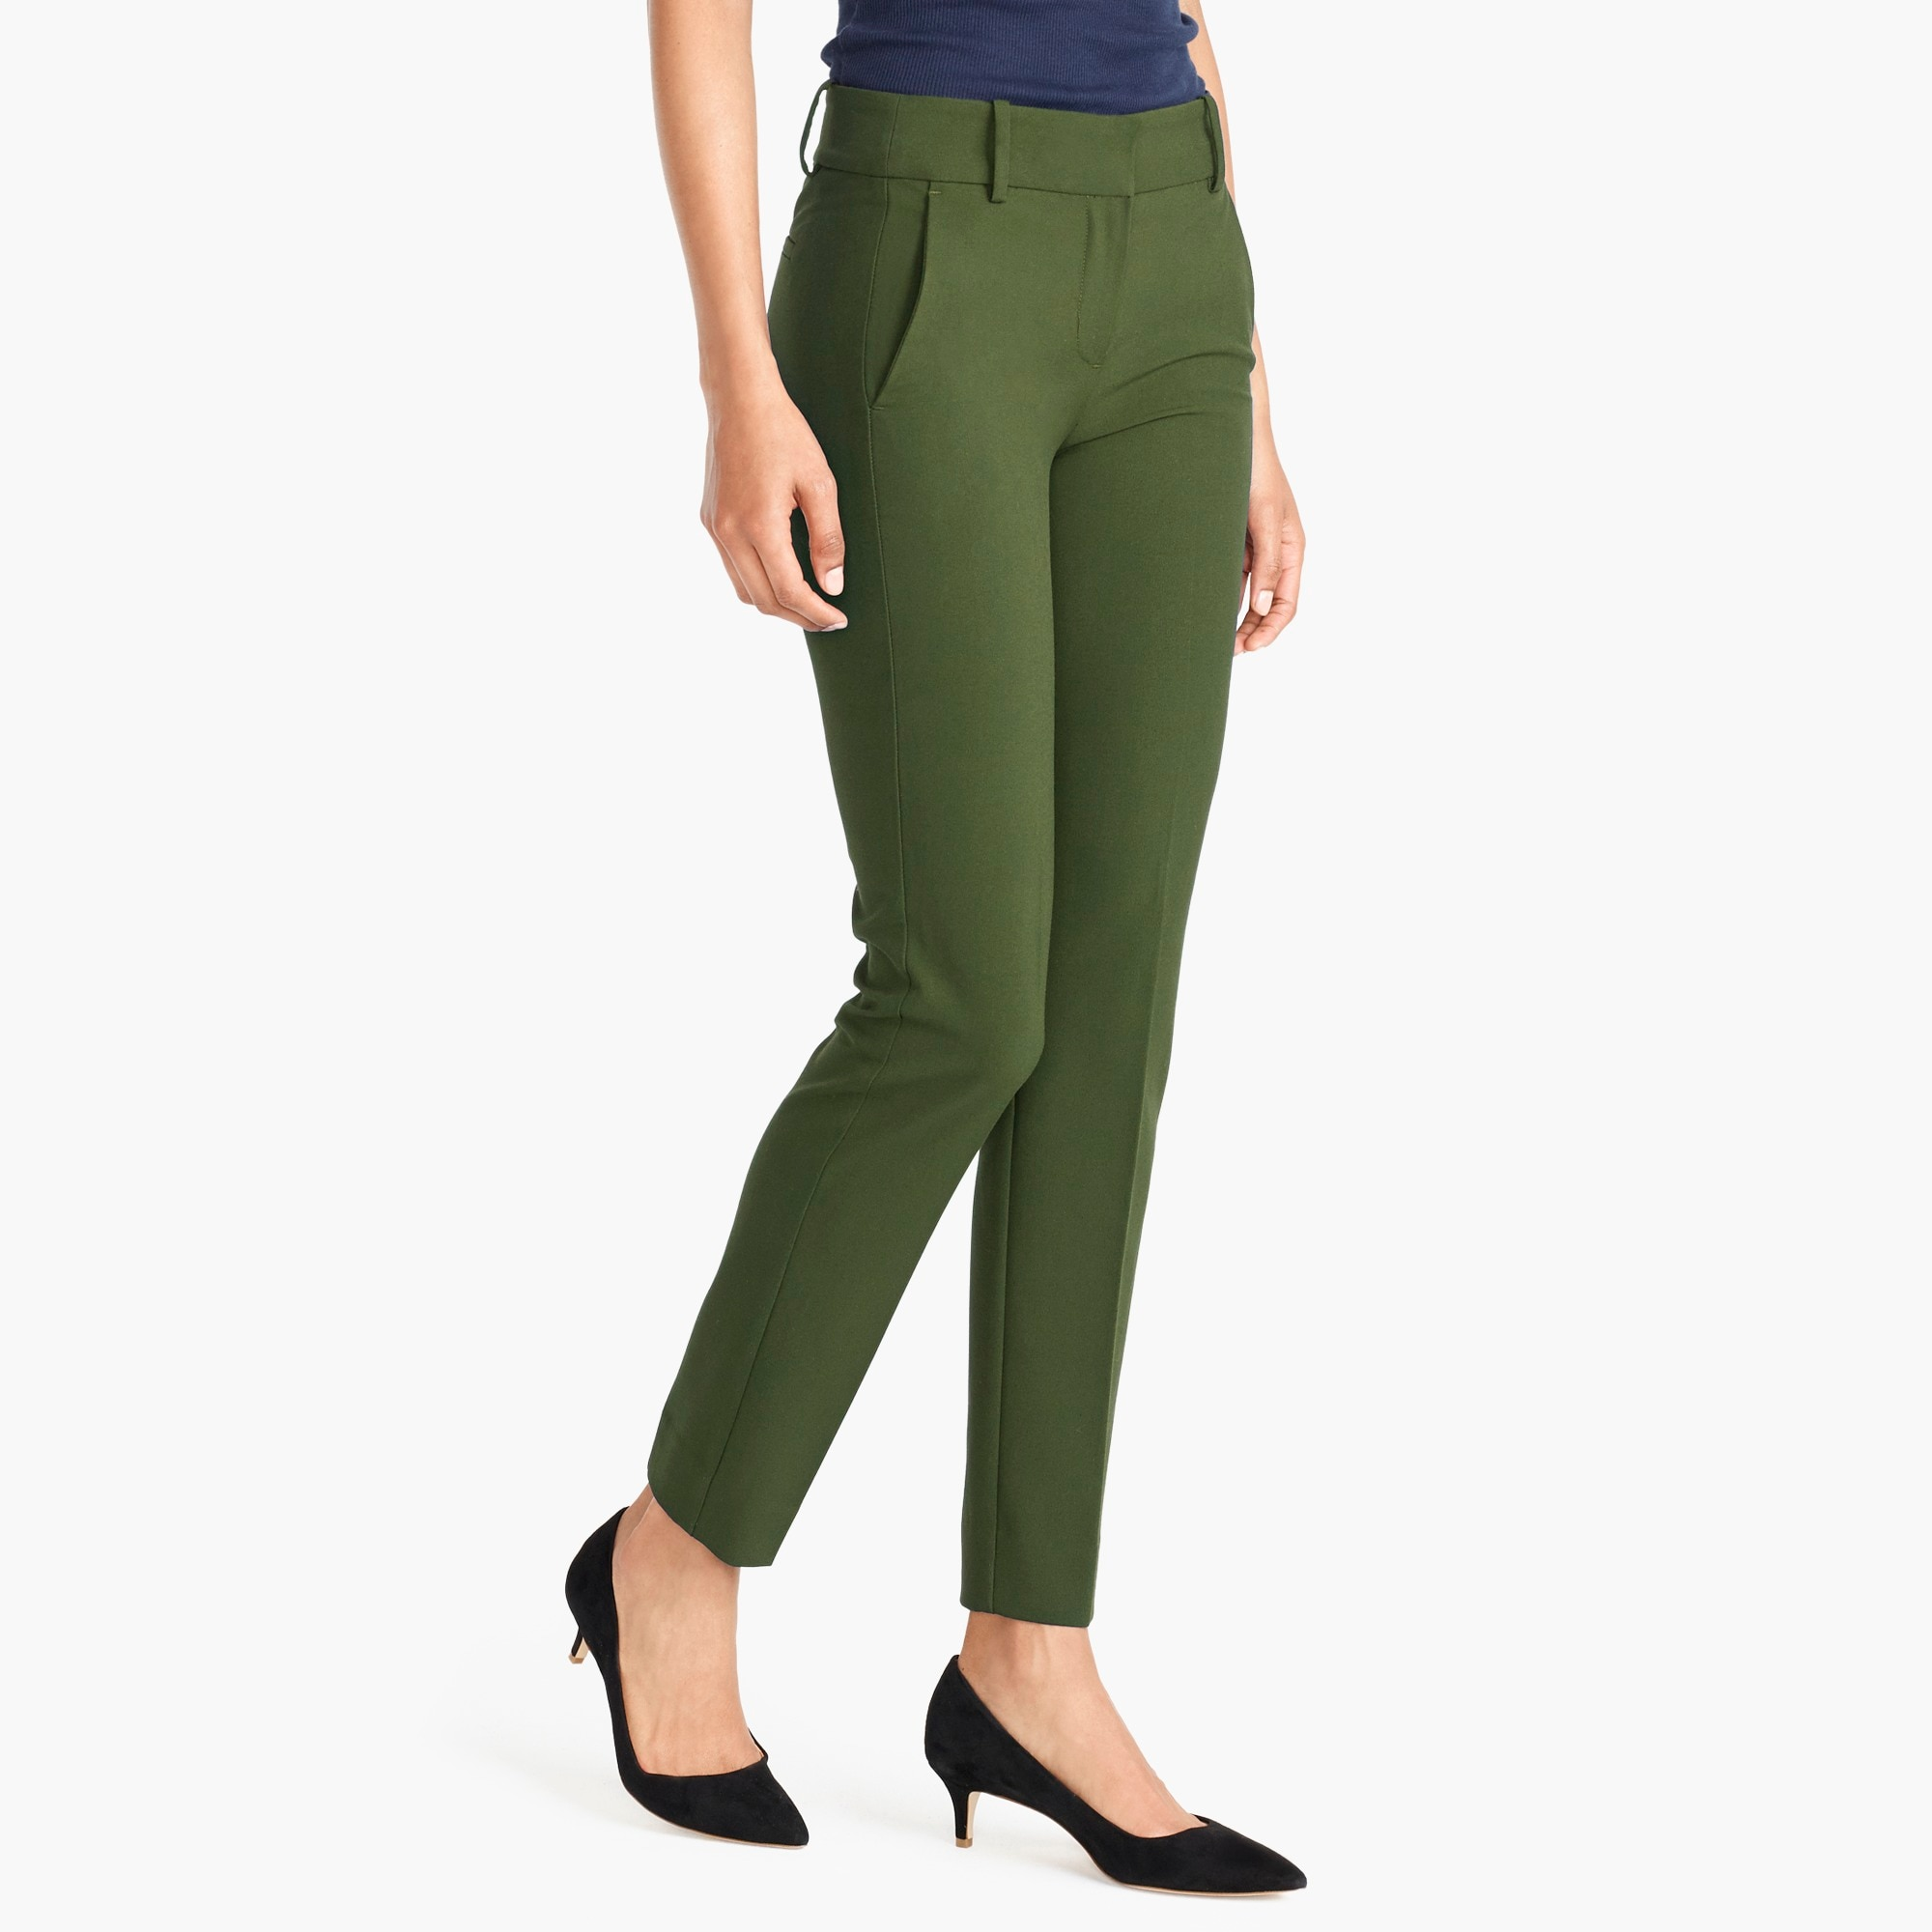 Image 1 for Ruby pant